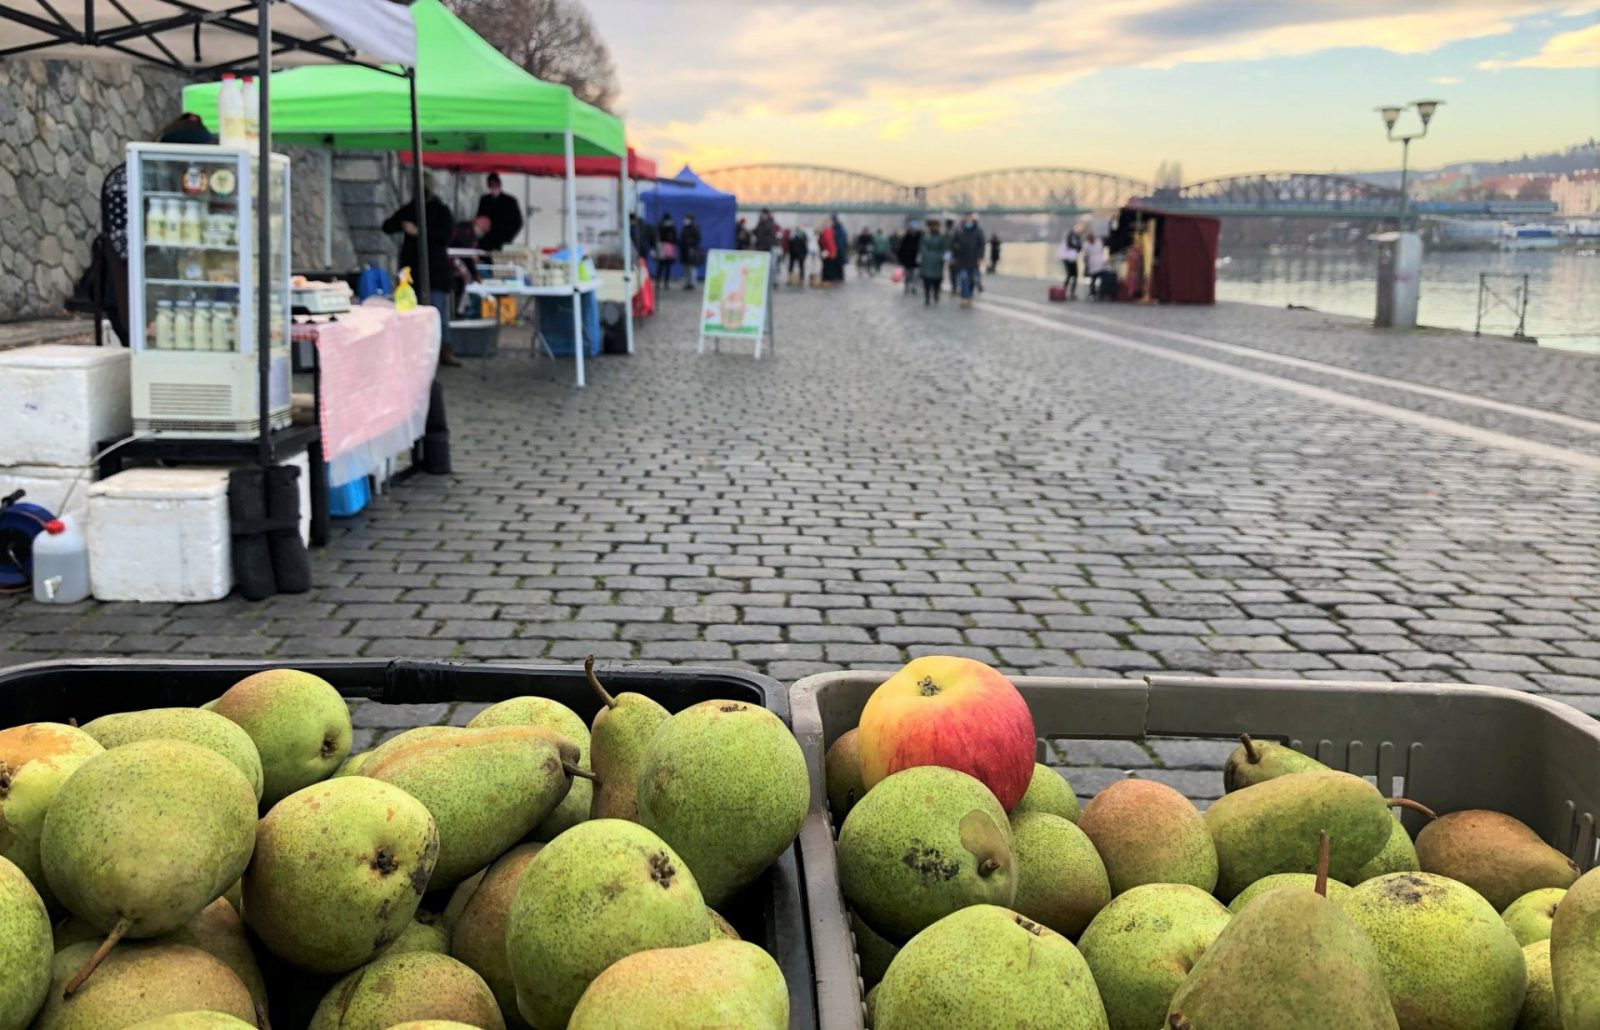 Saturday, May 8 at Náplavka – the farmer's market will be happenning, you can find details and a list of sellers in the article below.